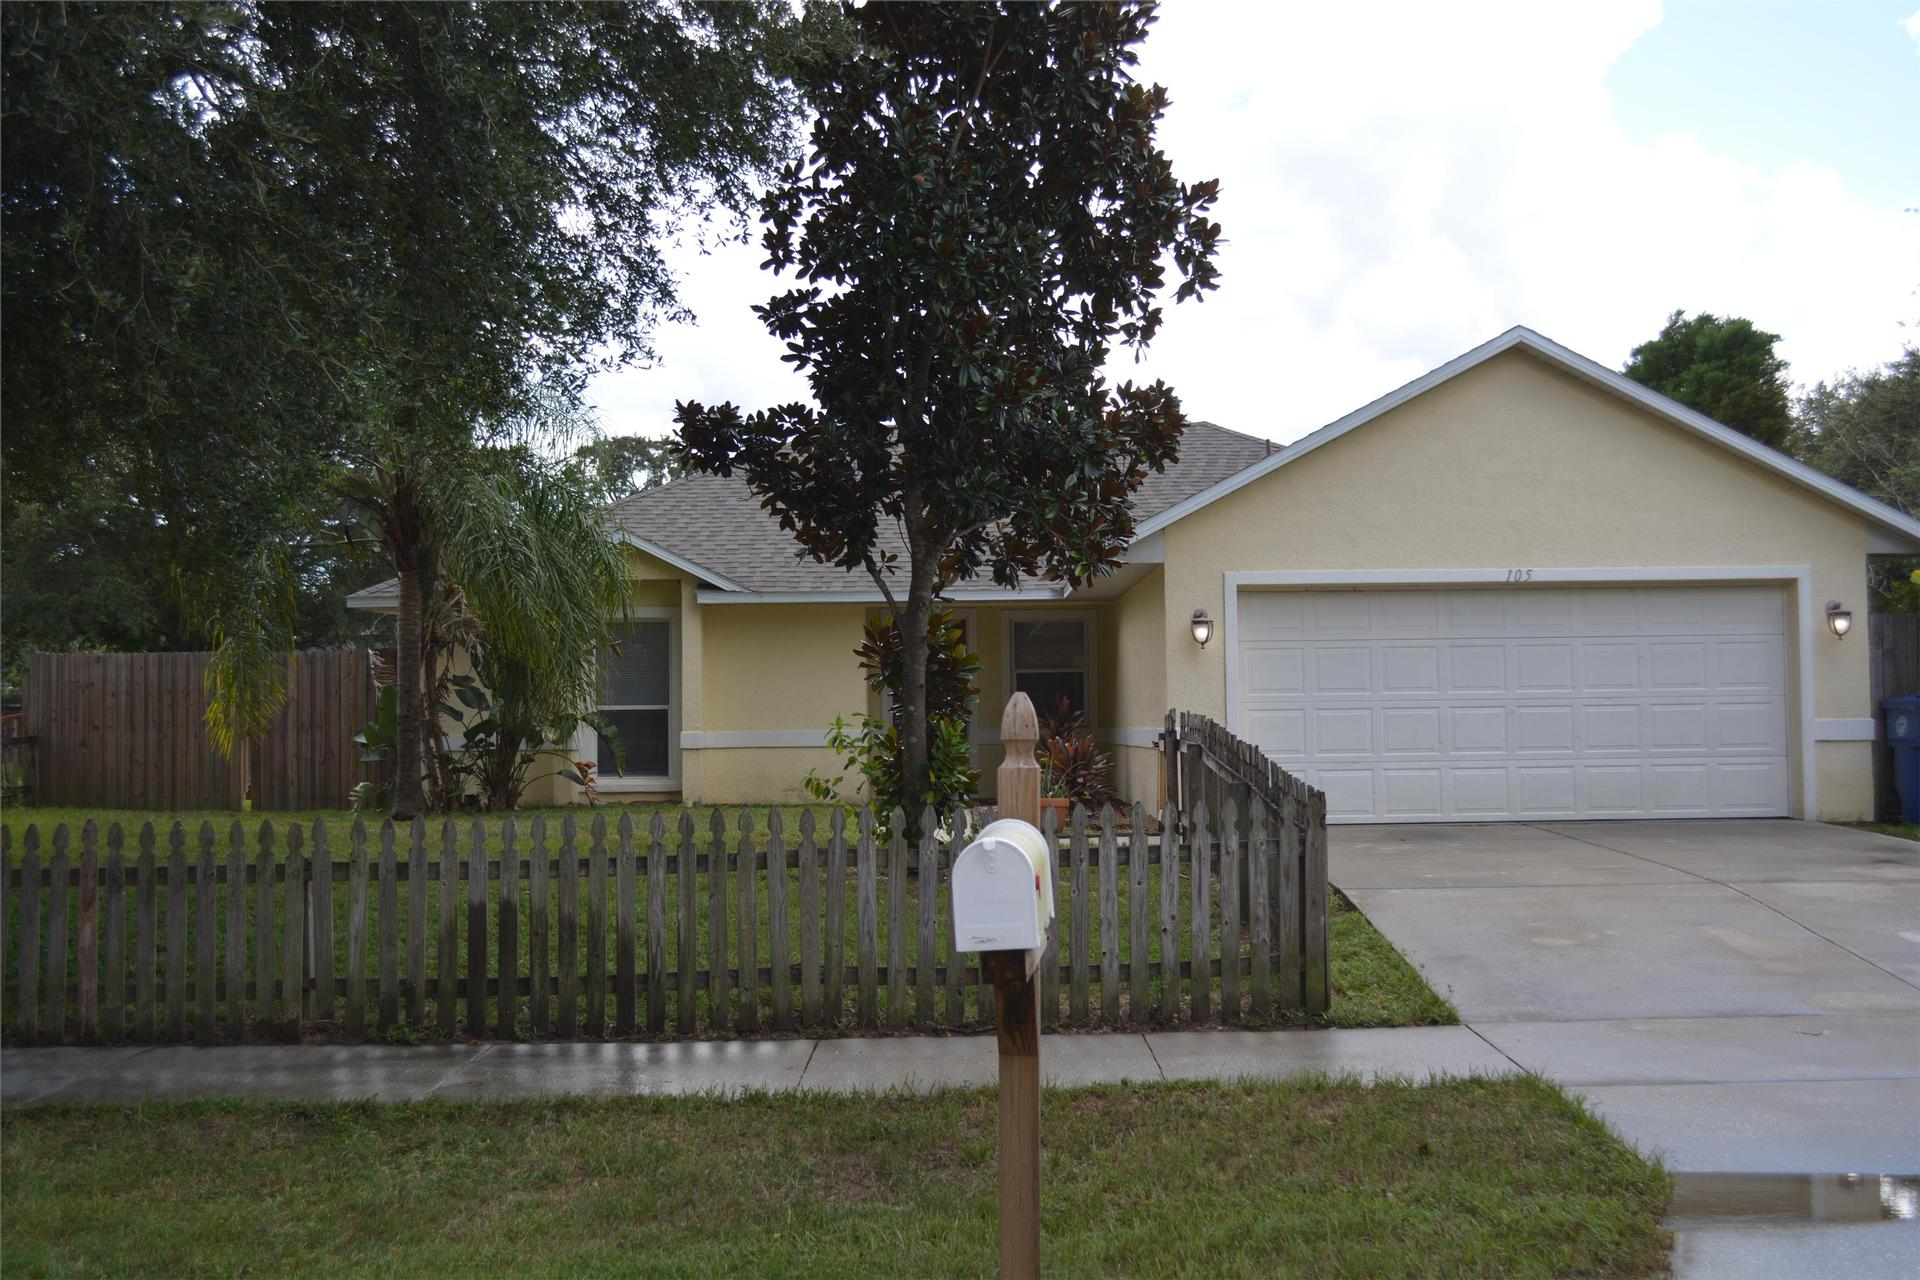 Photo of property: 105 Meadow Glen Ct Minneola, FL 34715